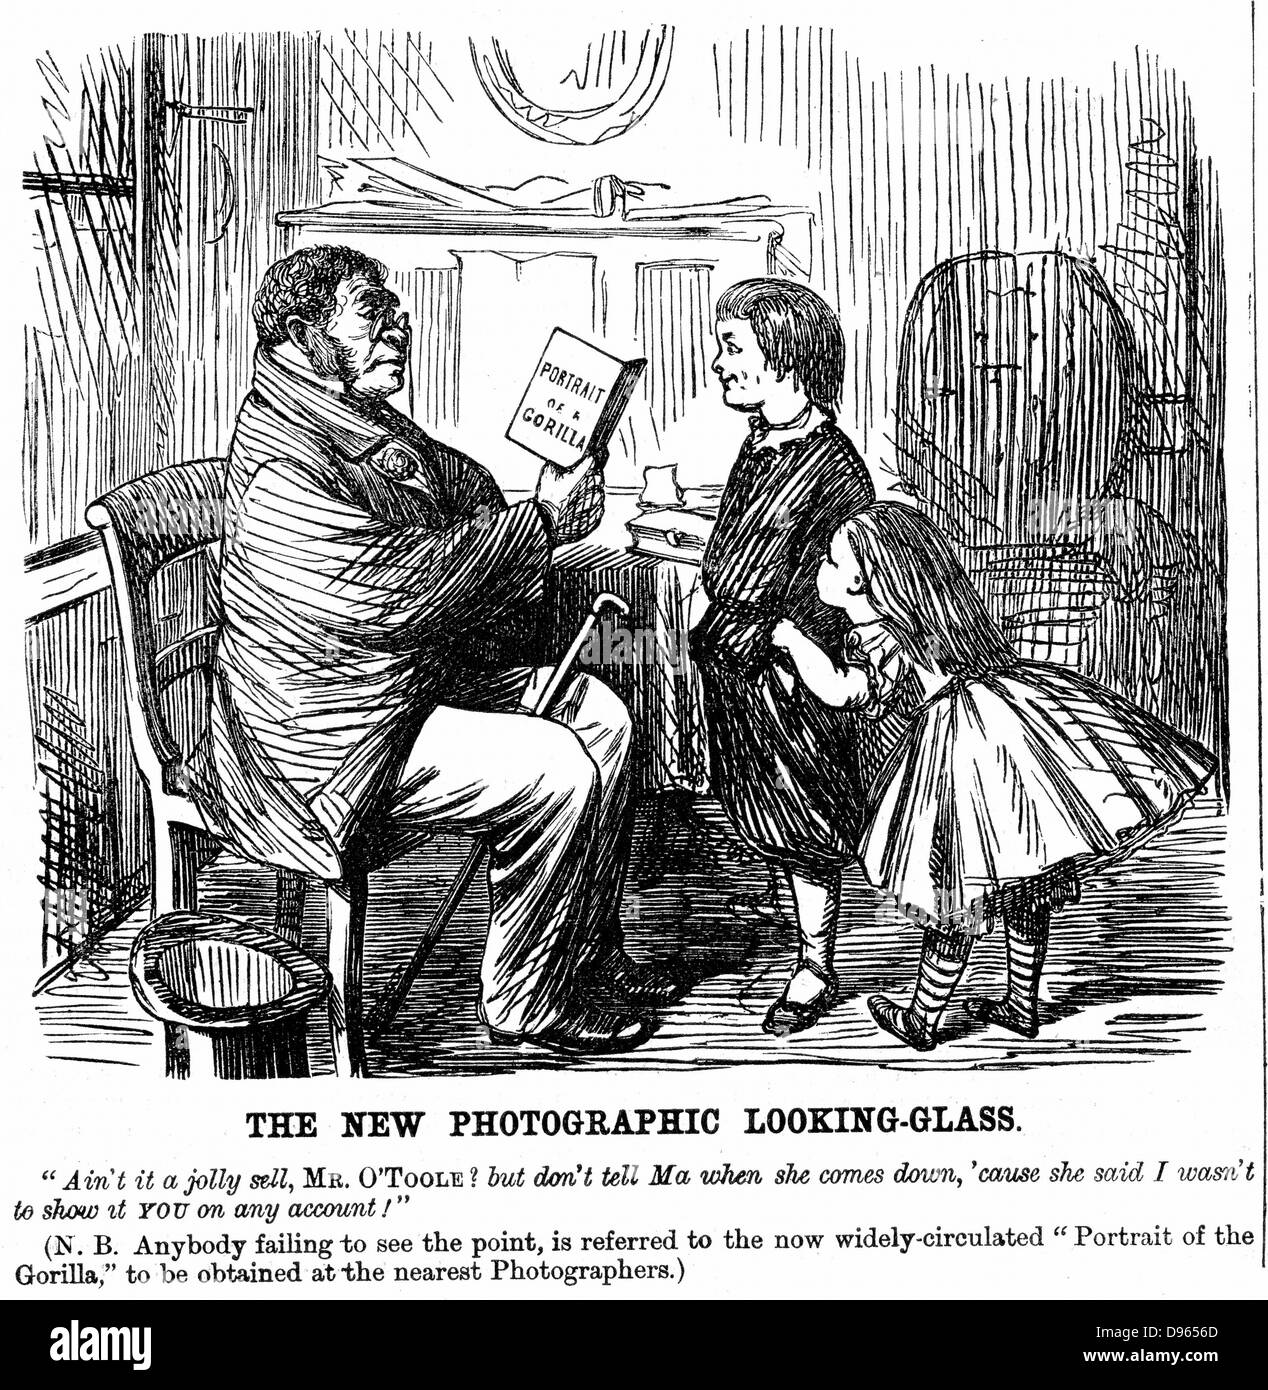 Darwinism: everyday proof of man's origins. Cartoon from 'Punch' (London, 1861). Wood engraving. - Stock Image